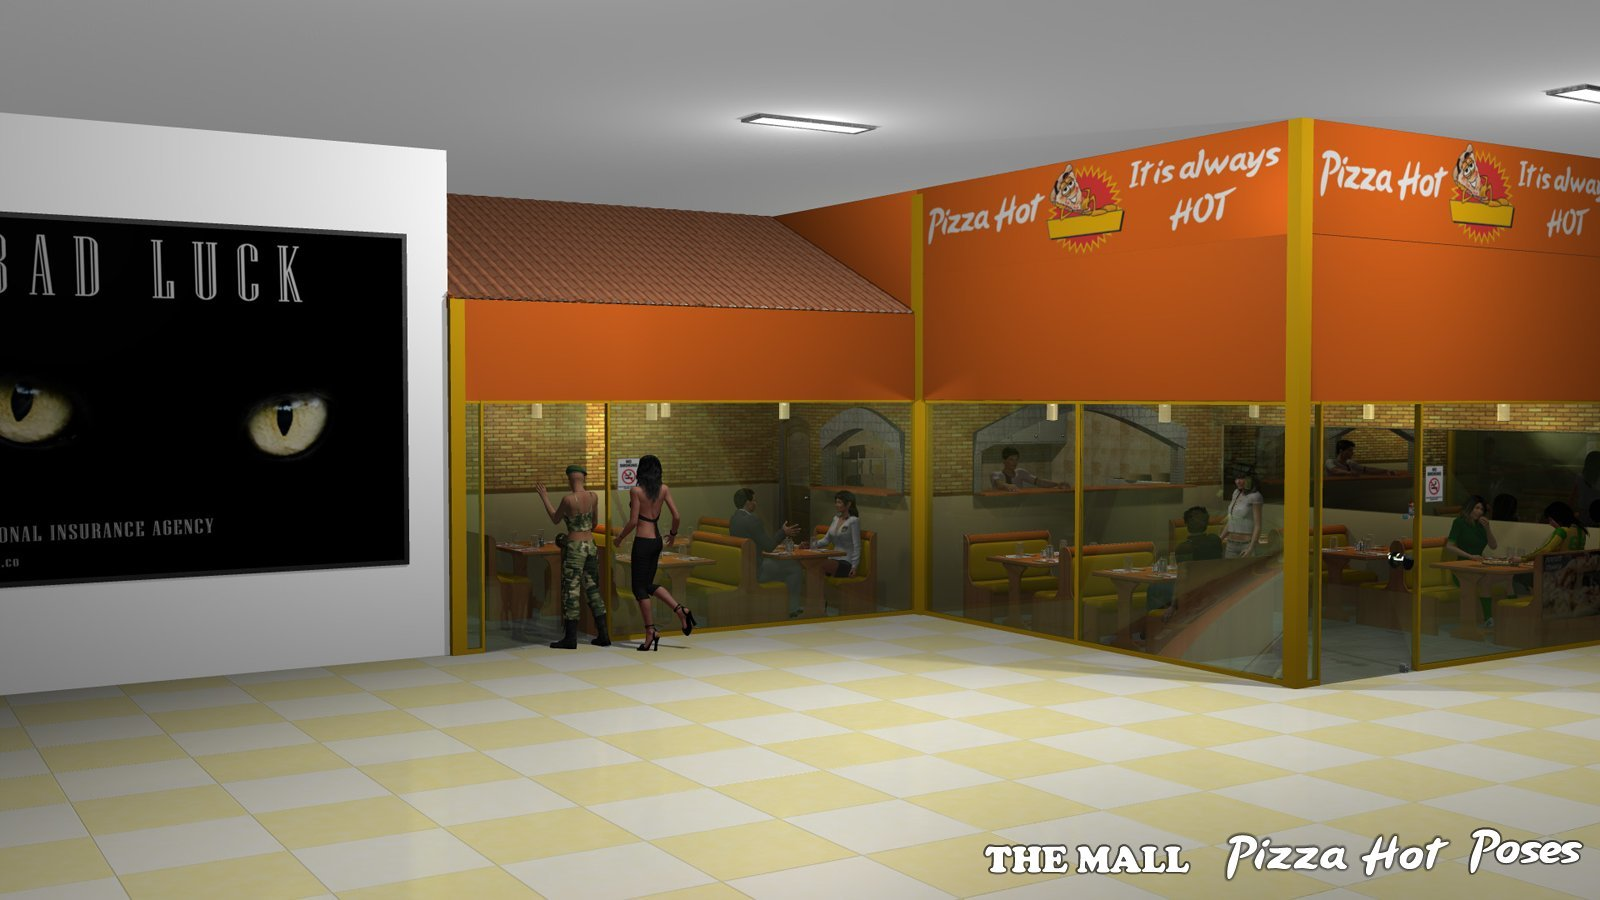 The Mall Pizza Hot Poses - Extended License